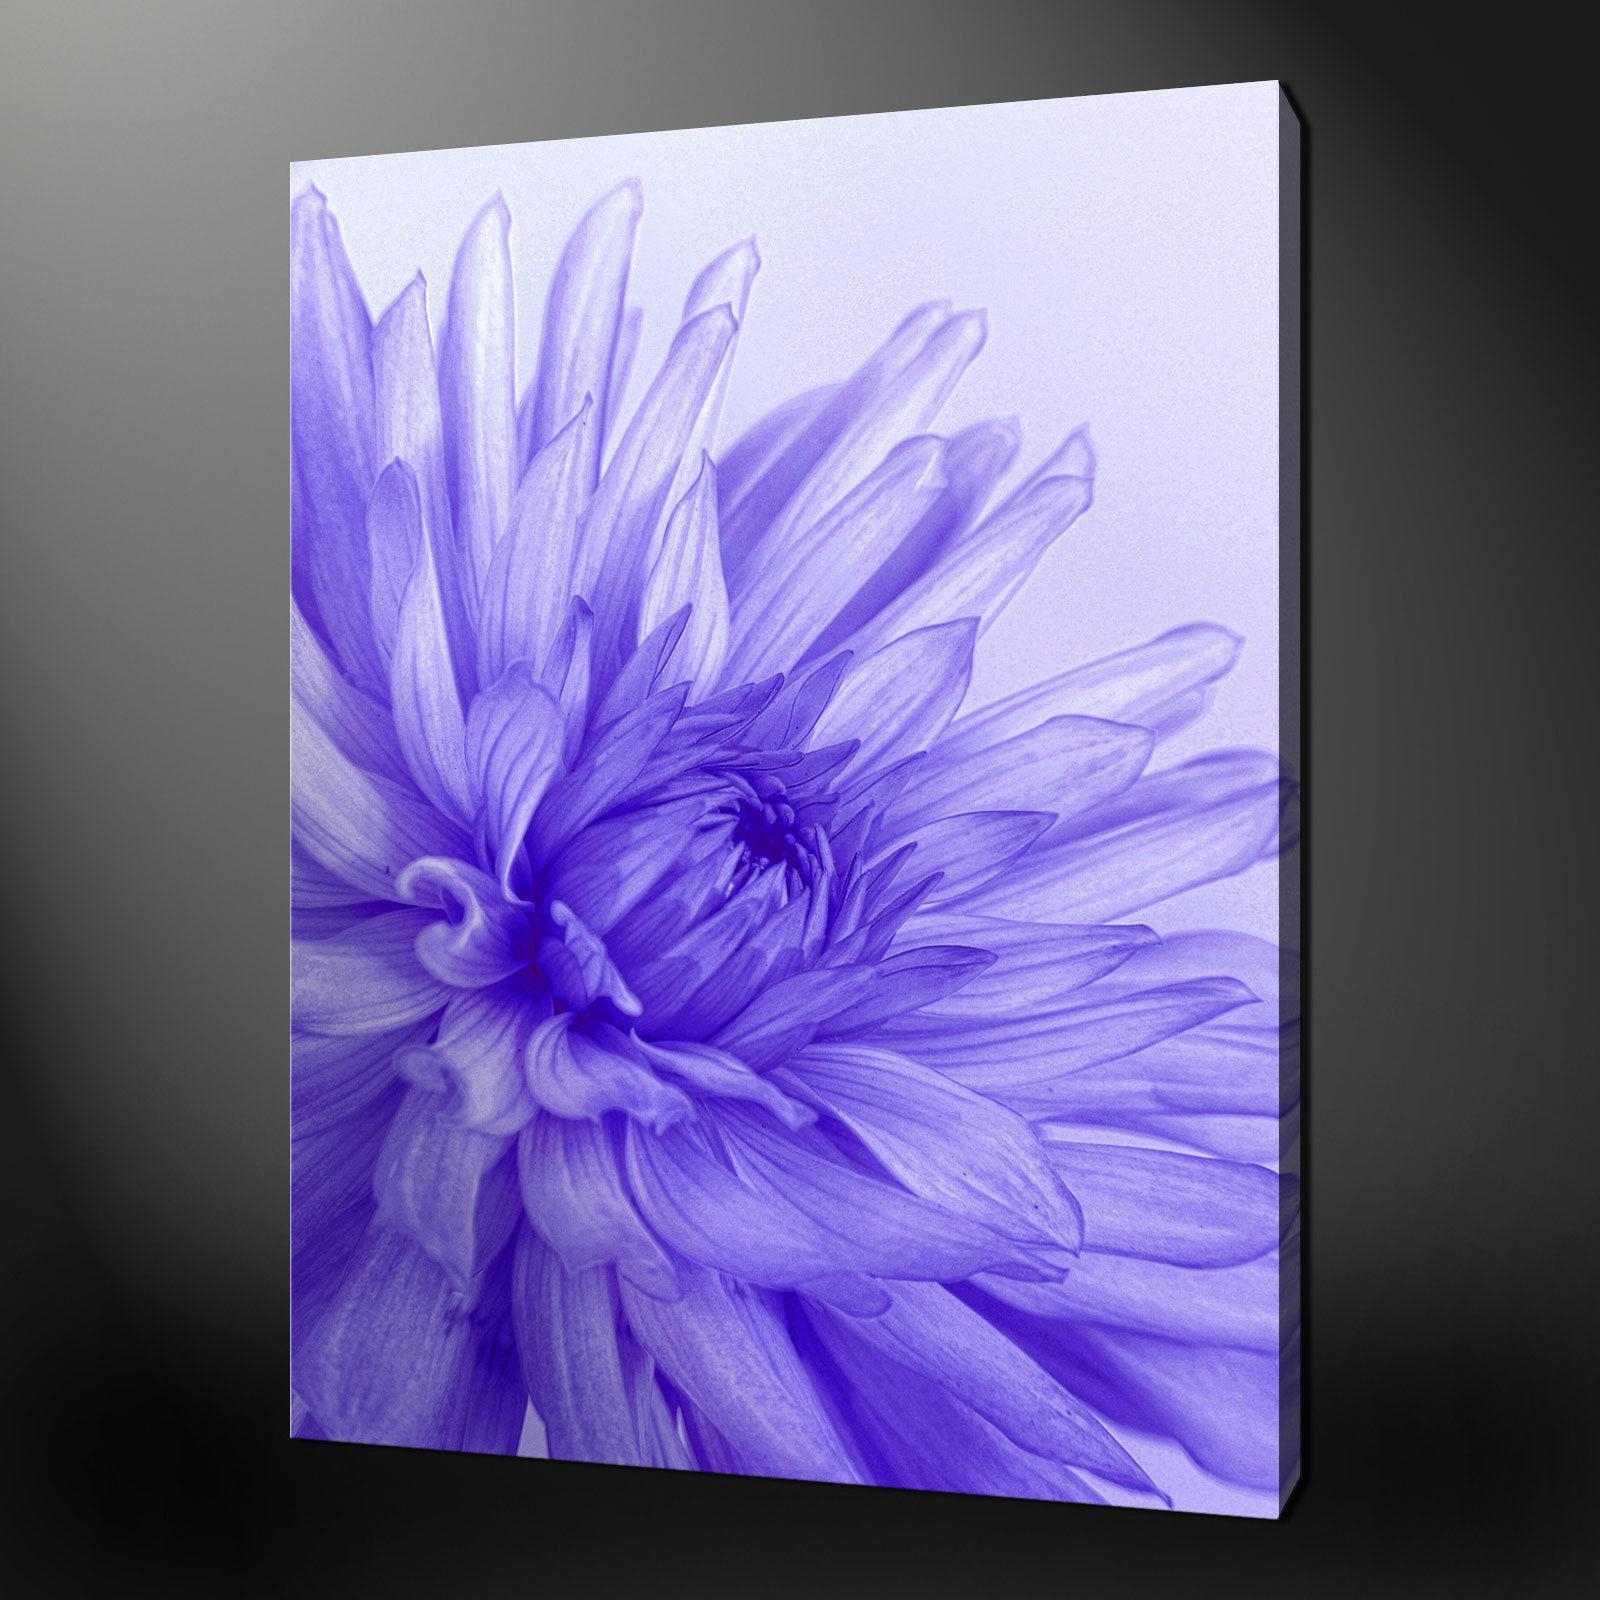 Blue Purple Flower Canvas Wall Art Pictures Prints 20 X 16 Inch With Regard To Purple Canvas Wall Art (Image 4 of 20)